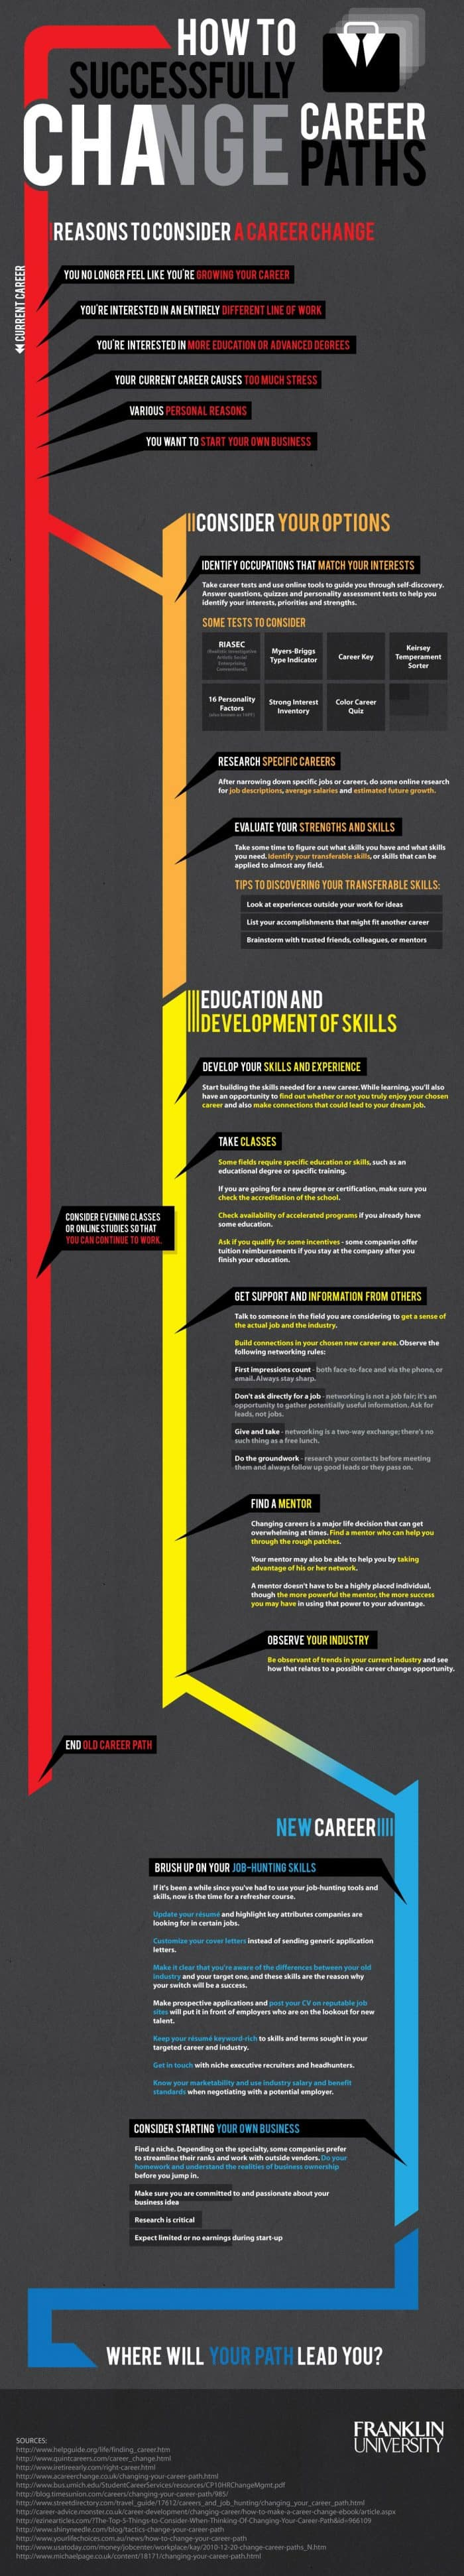 How to Successfully Change Career Paths Infographic